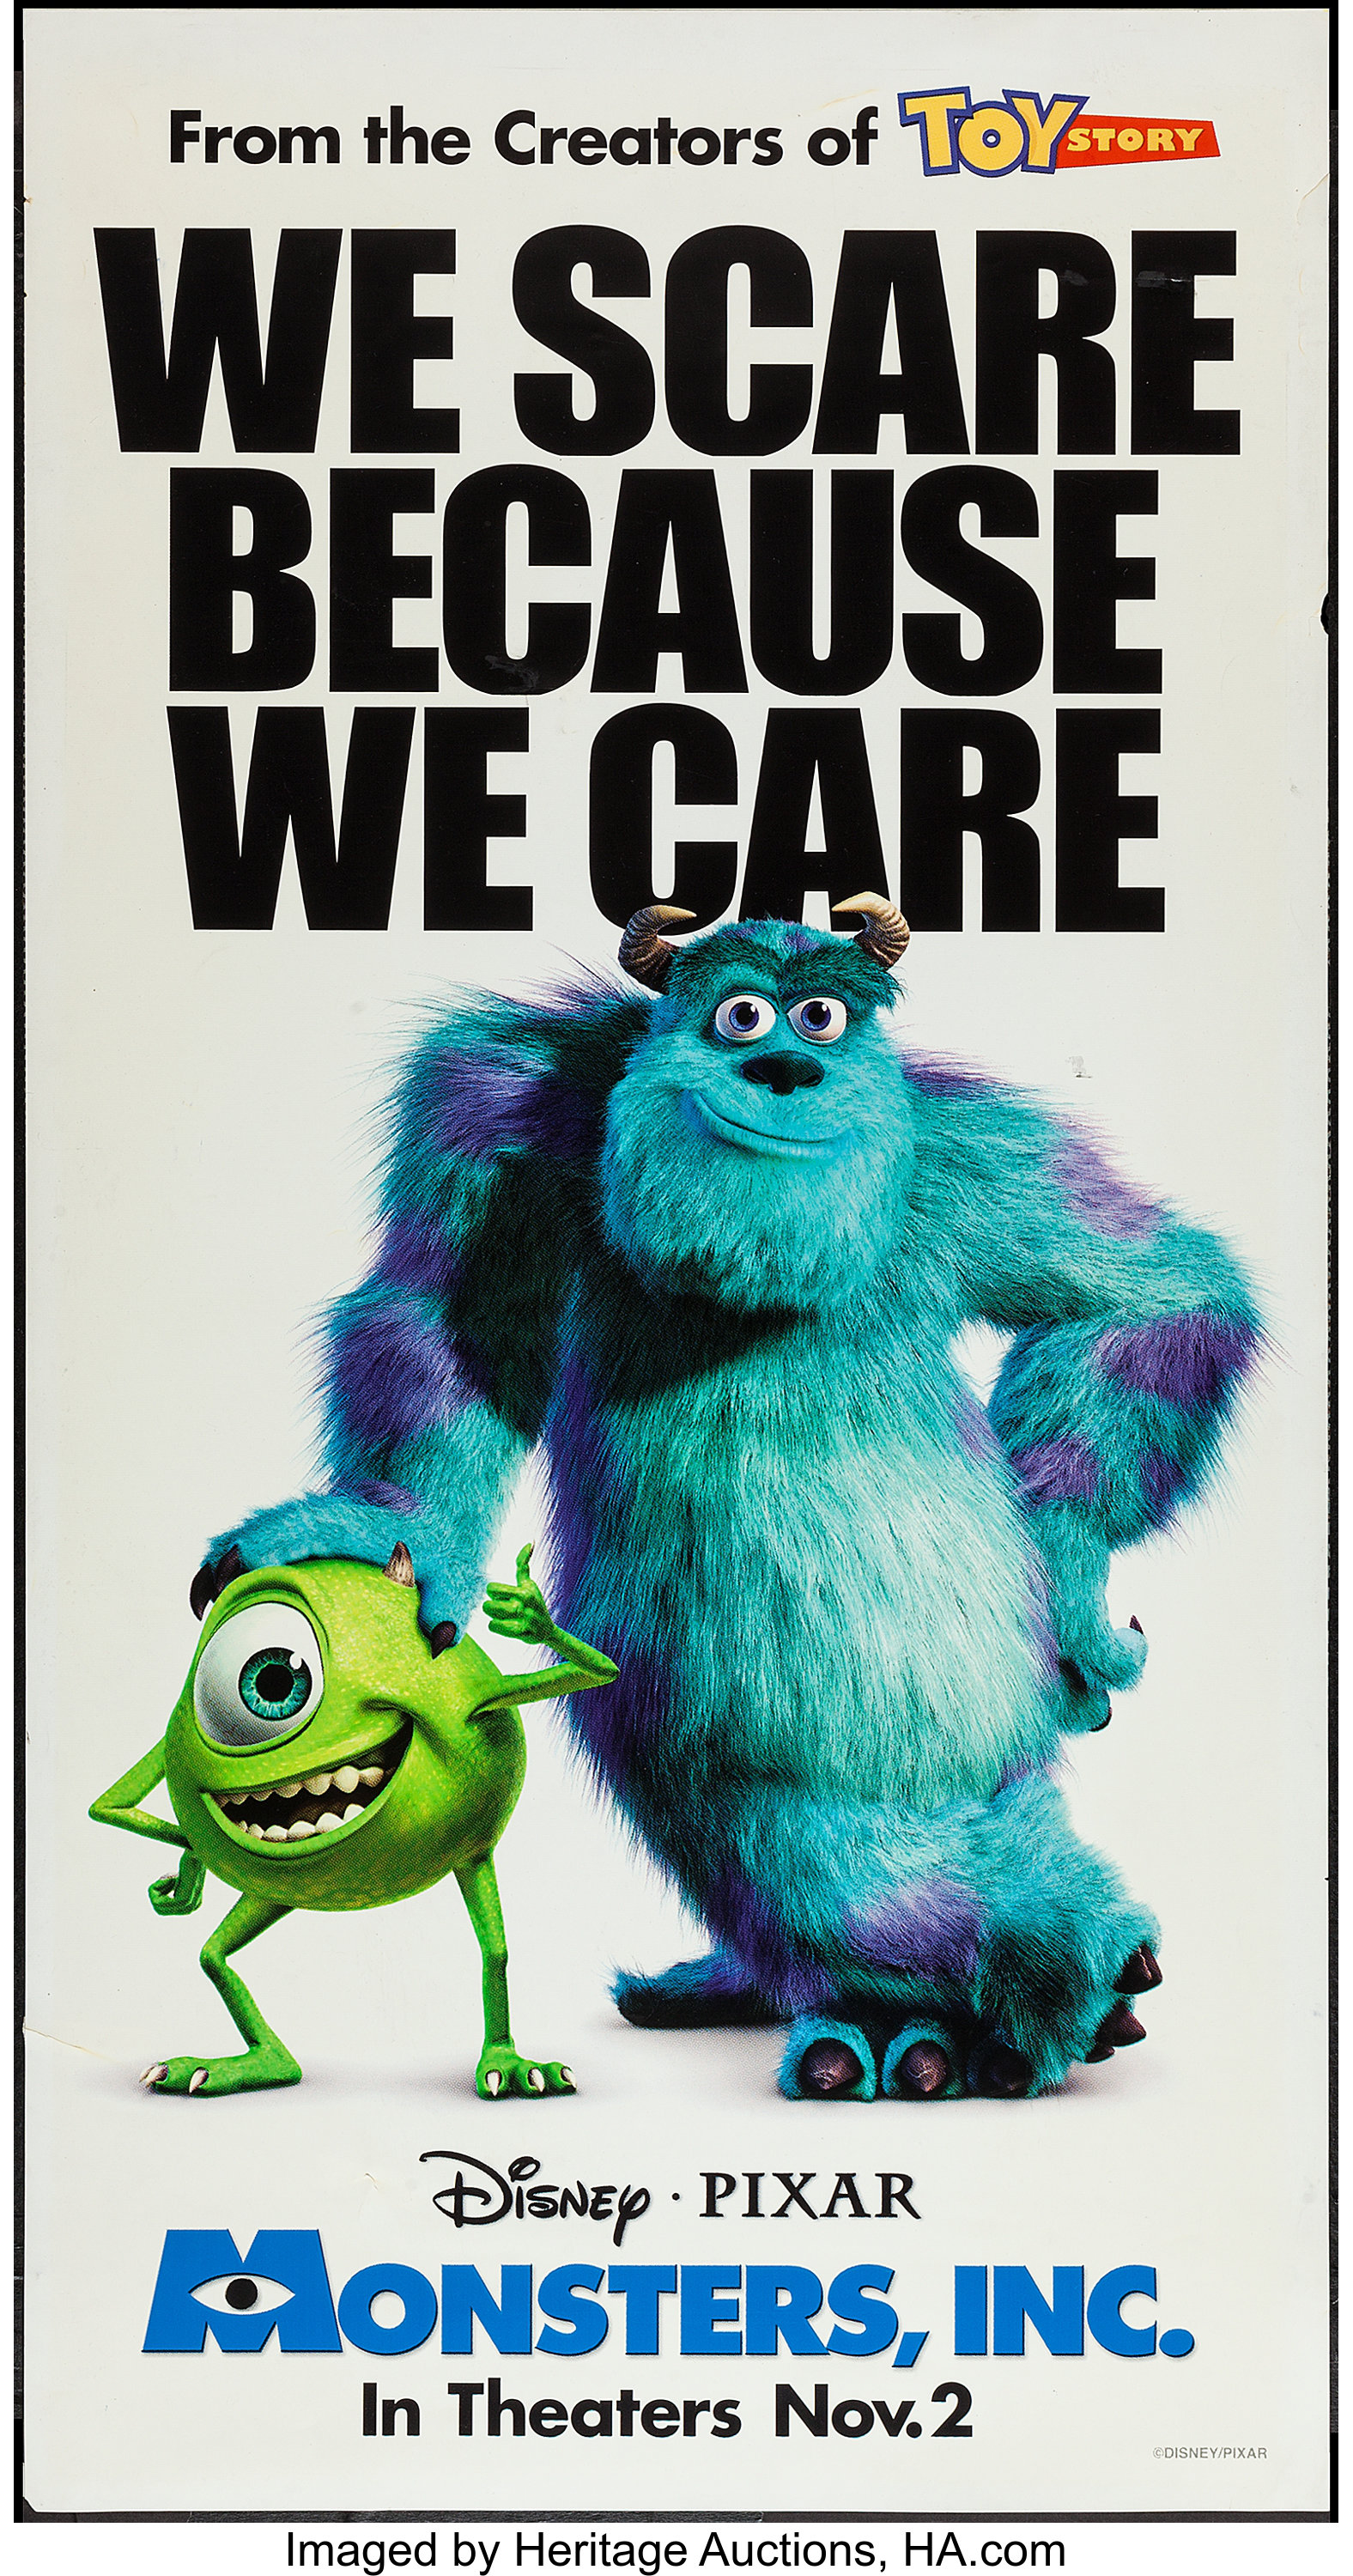 Monsters Inc Buena Vista 2001 Kiosk Poster 26 25 X 50 Ds Lot 50274 Heritage Auctions